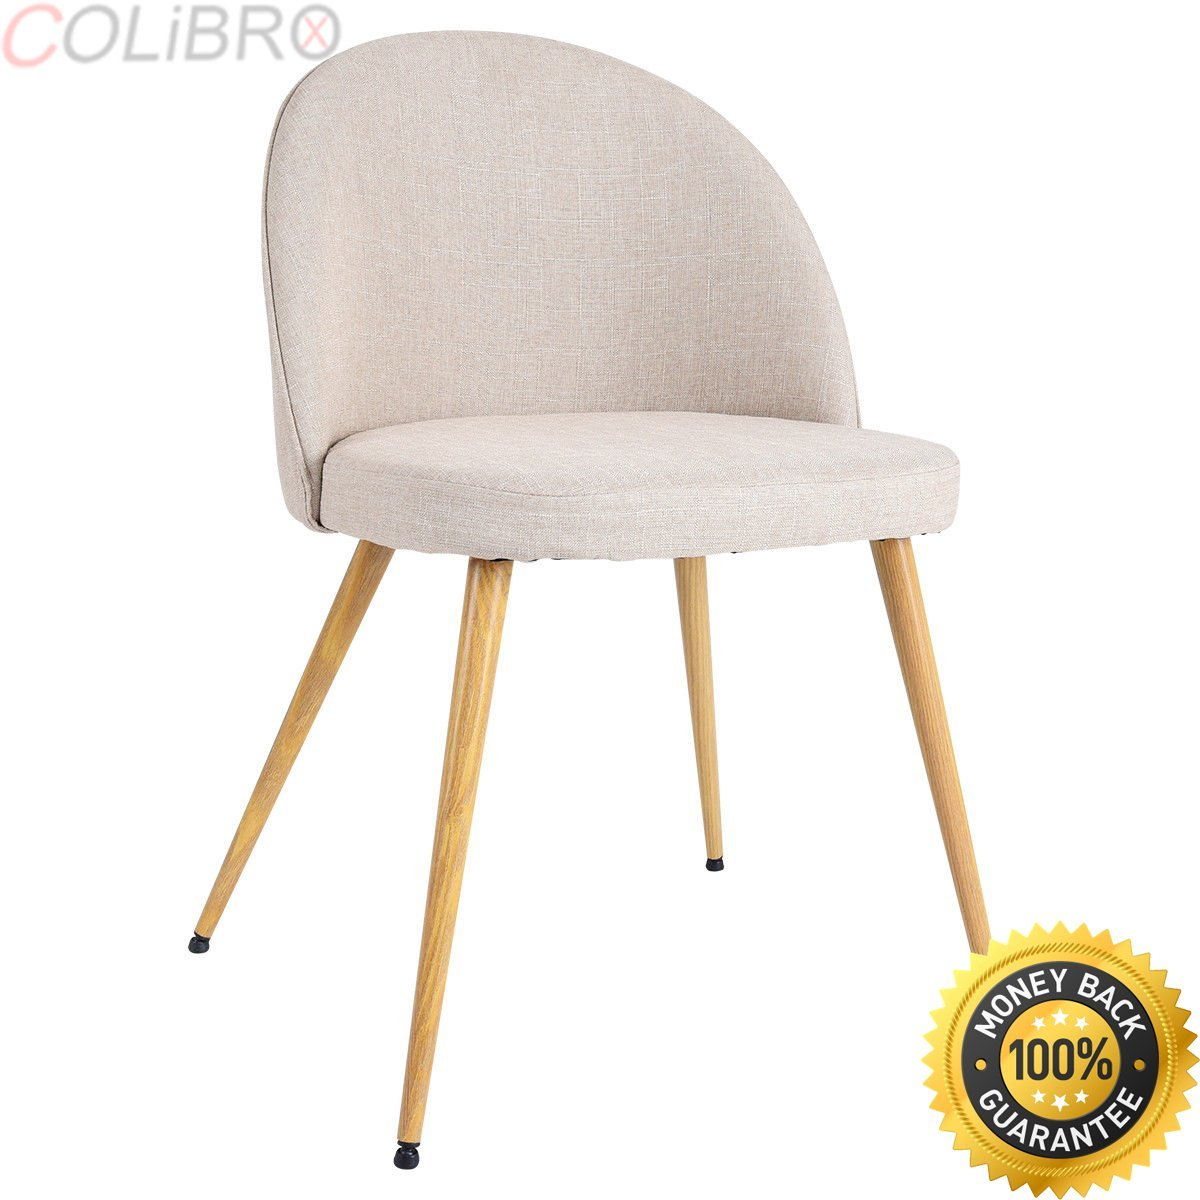 arm accent chairs find line for dining room table get quotations colibrox set fabric cushion seat chair metal leg marble side inch square tablecloth garden string target end